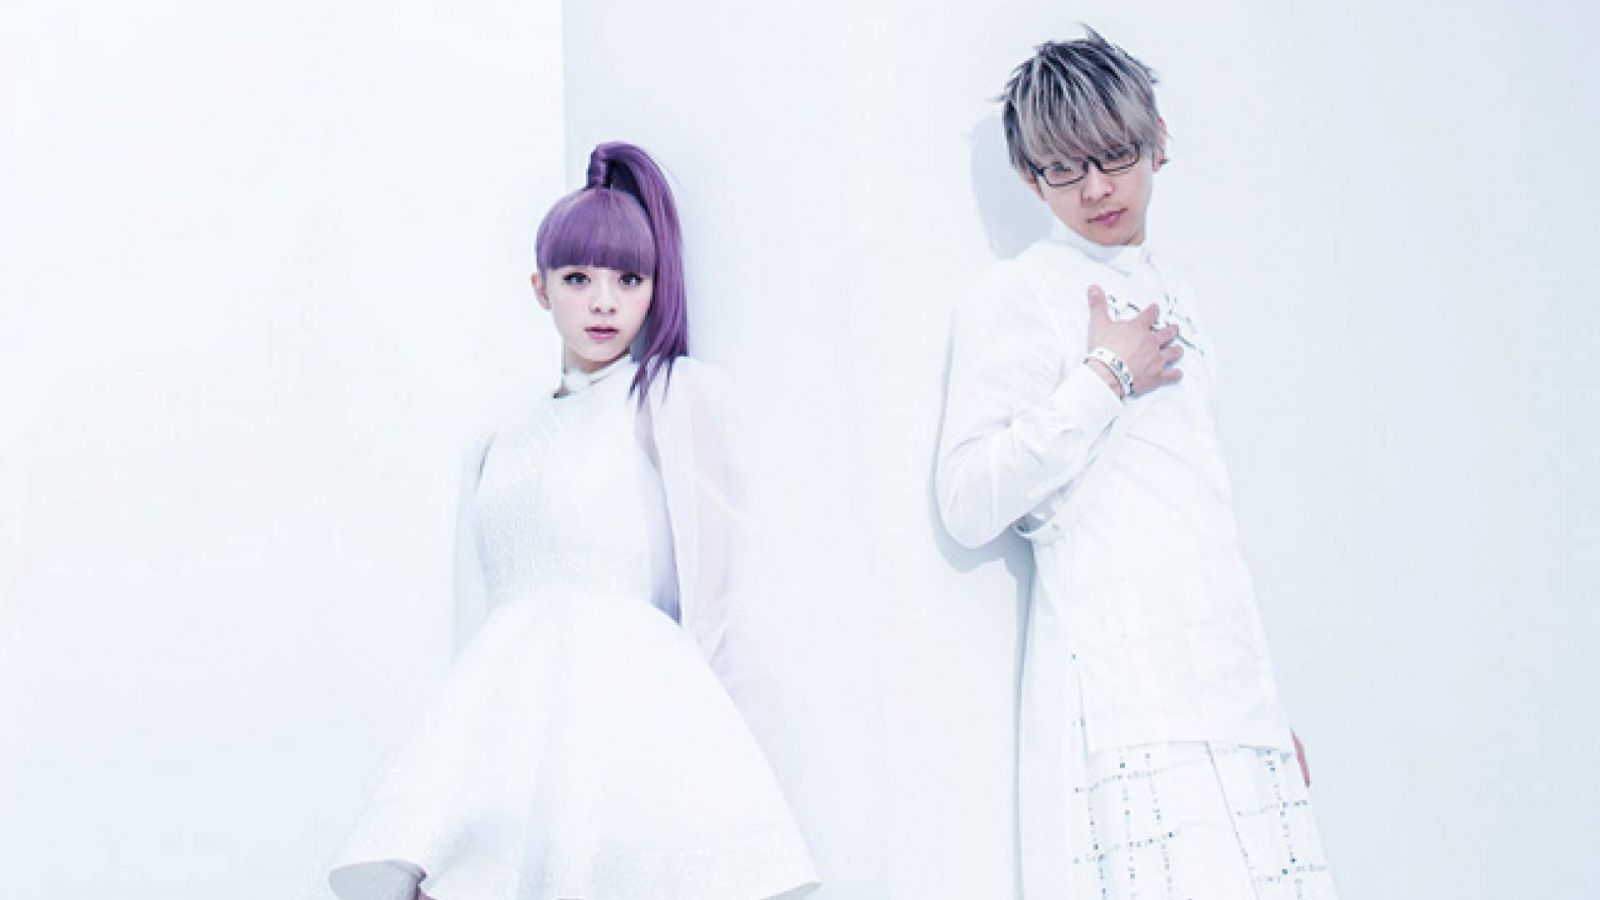 GARNiDELiA to Perform at Sakura-Con 2015 © 2015 Sony Music Entertainment (Japan) Inc. All rights reserved.